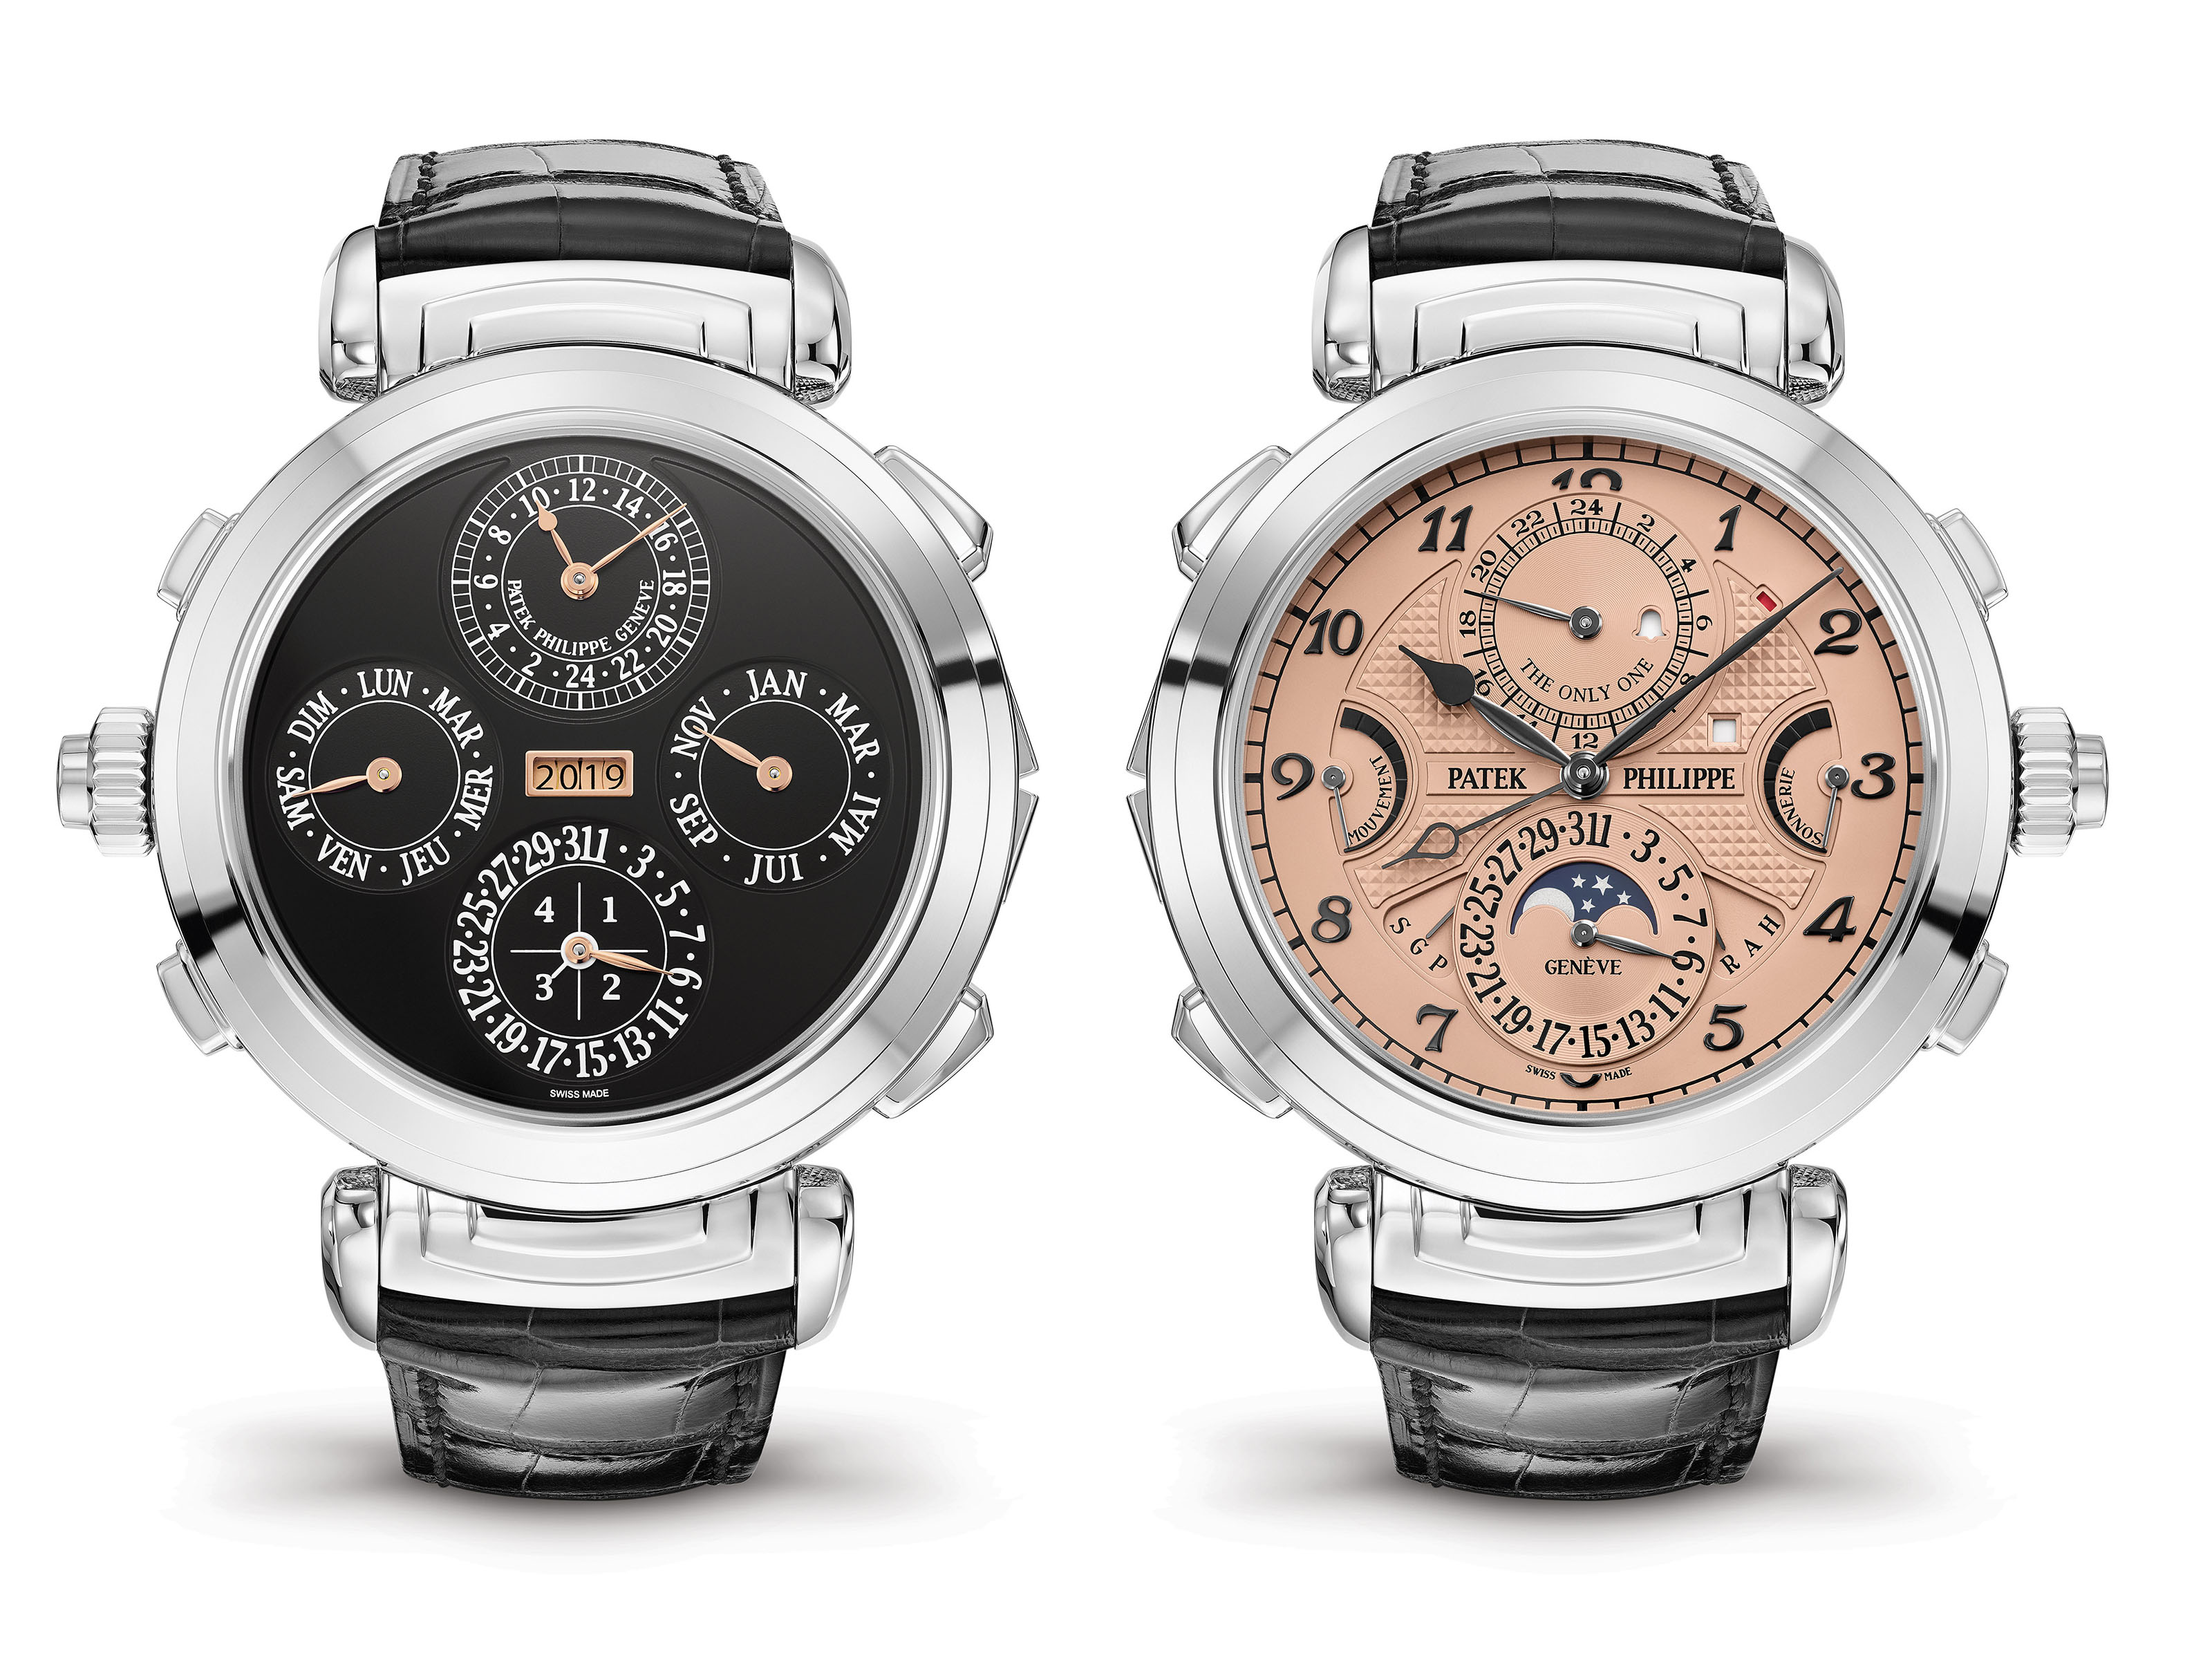 PATEK PHILIPPE PATEK PHILIPPE GRANDMASTER CHIME  The Grandmaster Chime reference 6300A-010 was created specially for Only Watch 2019. It stands out as the first and only version of this timepiece ever produced in stainless steel.